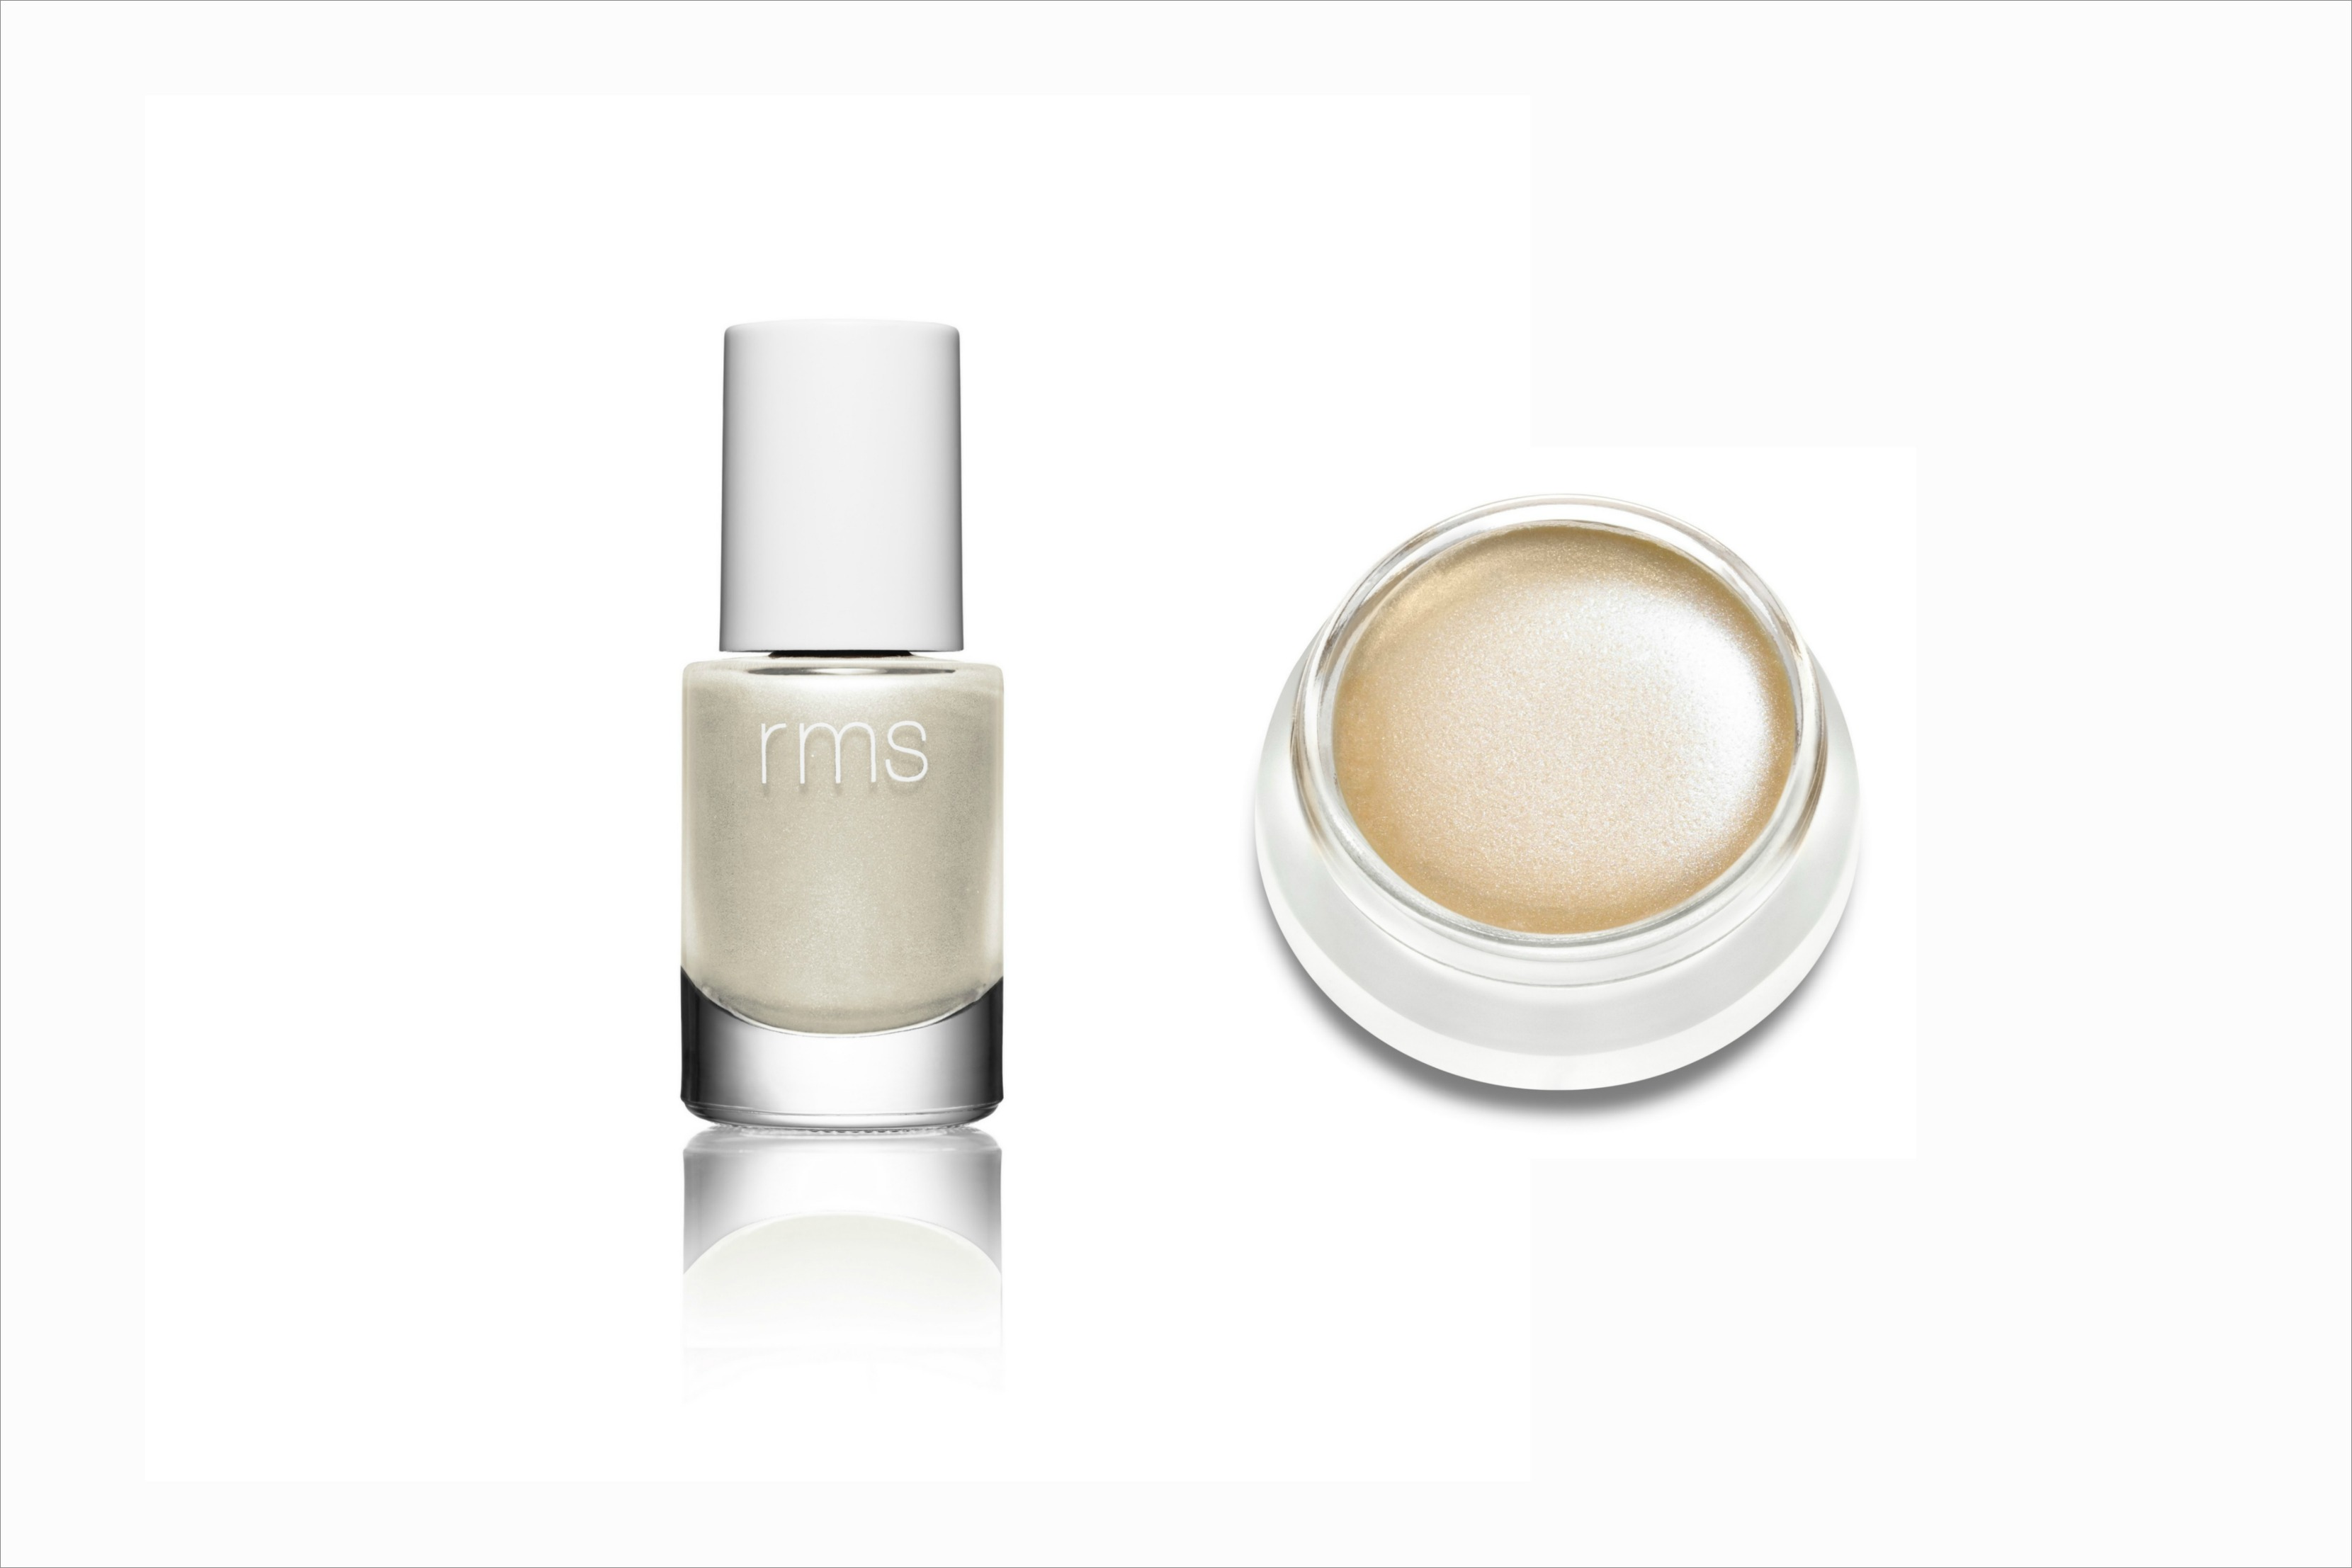 RMS Beauty Living Luminizer and Nail Polish in Luminzer